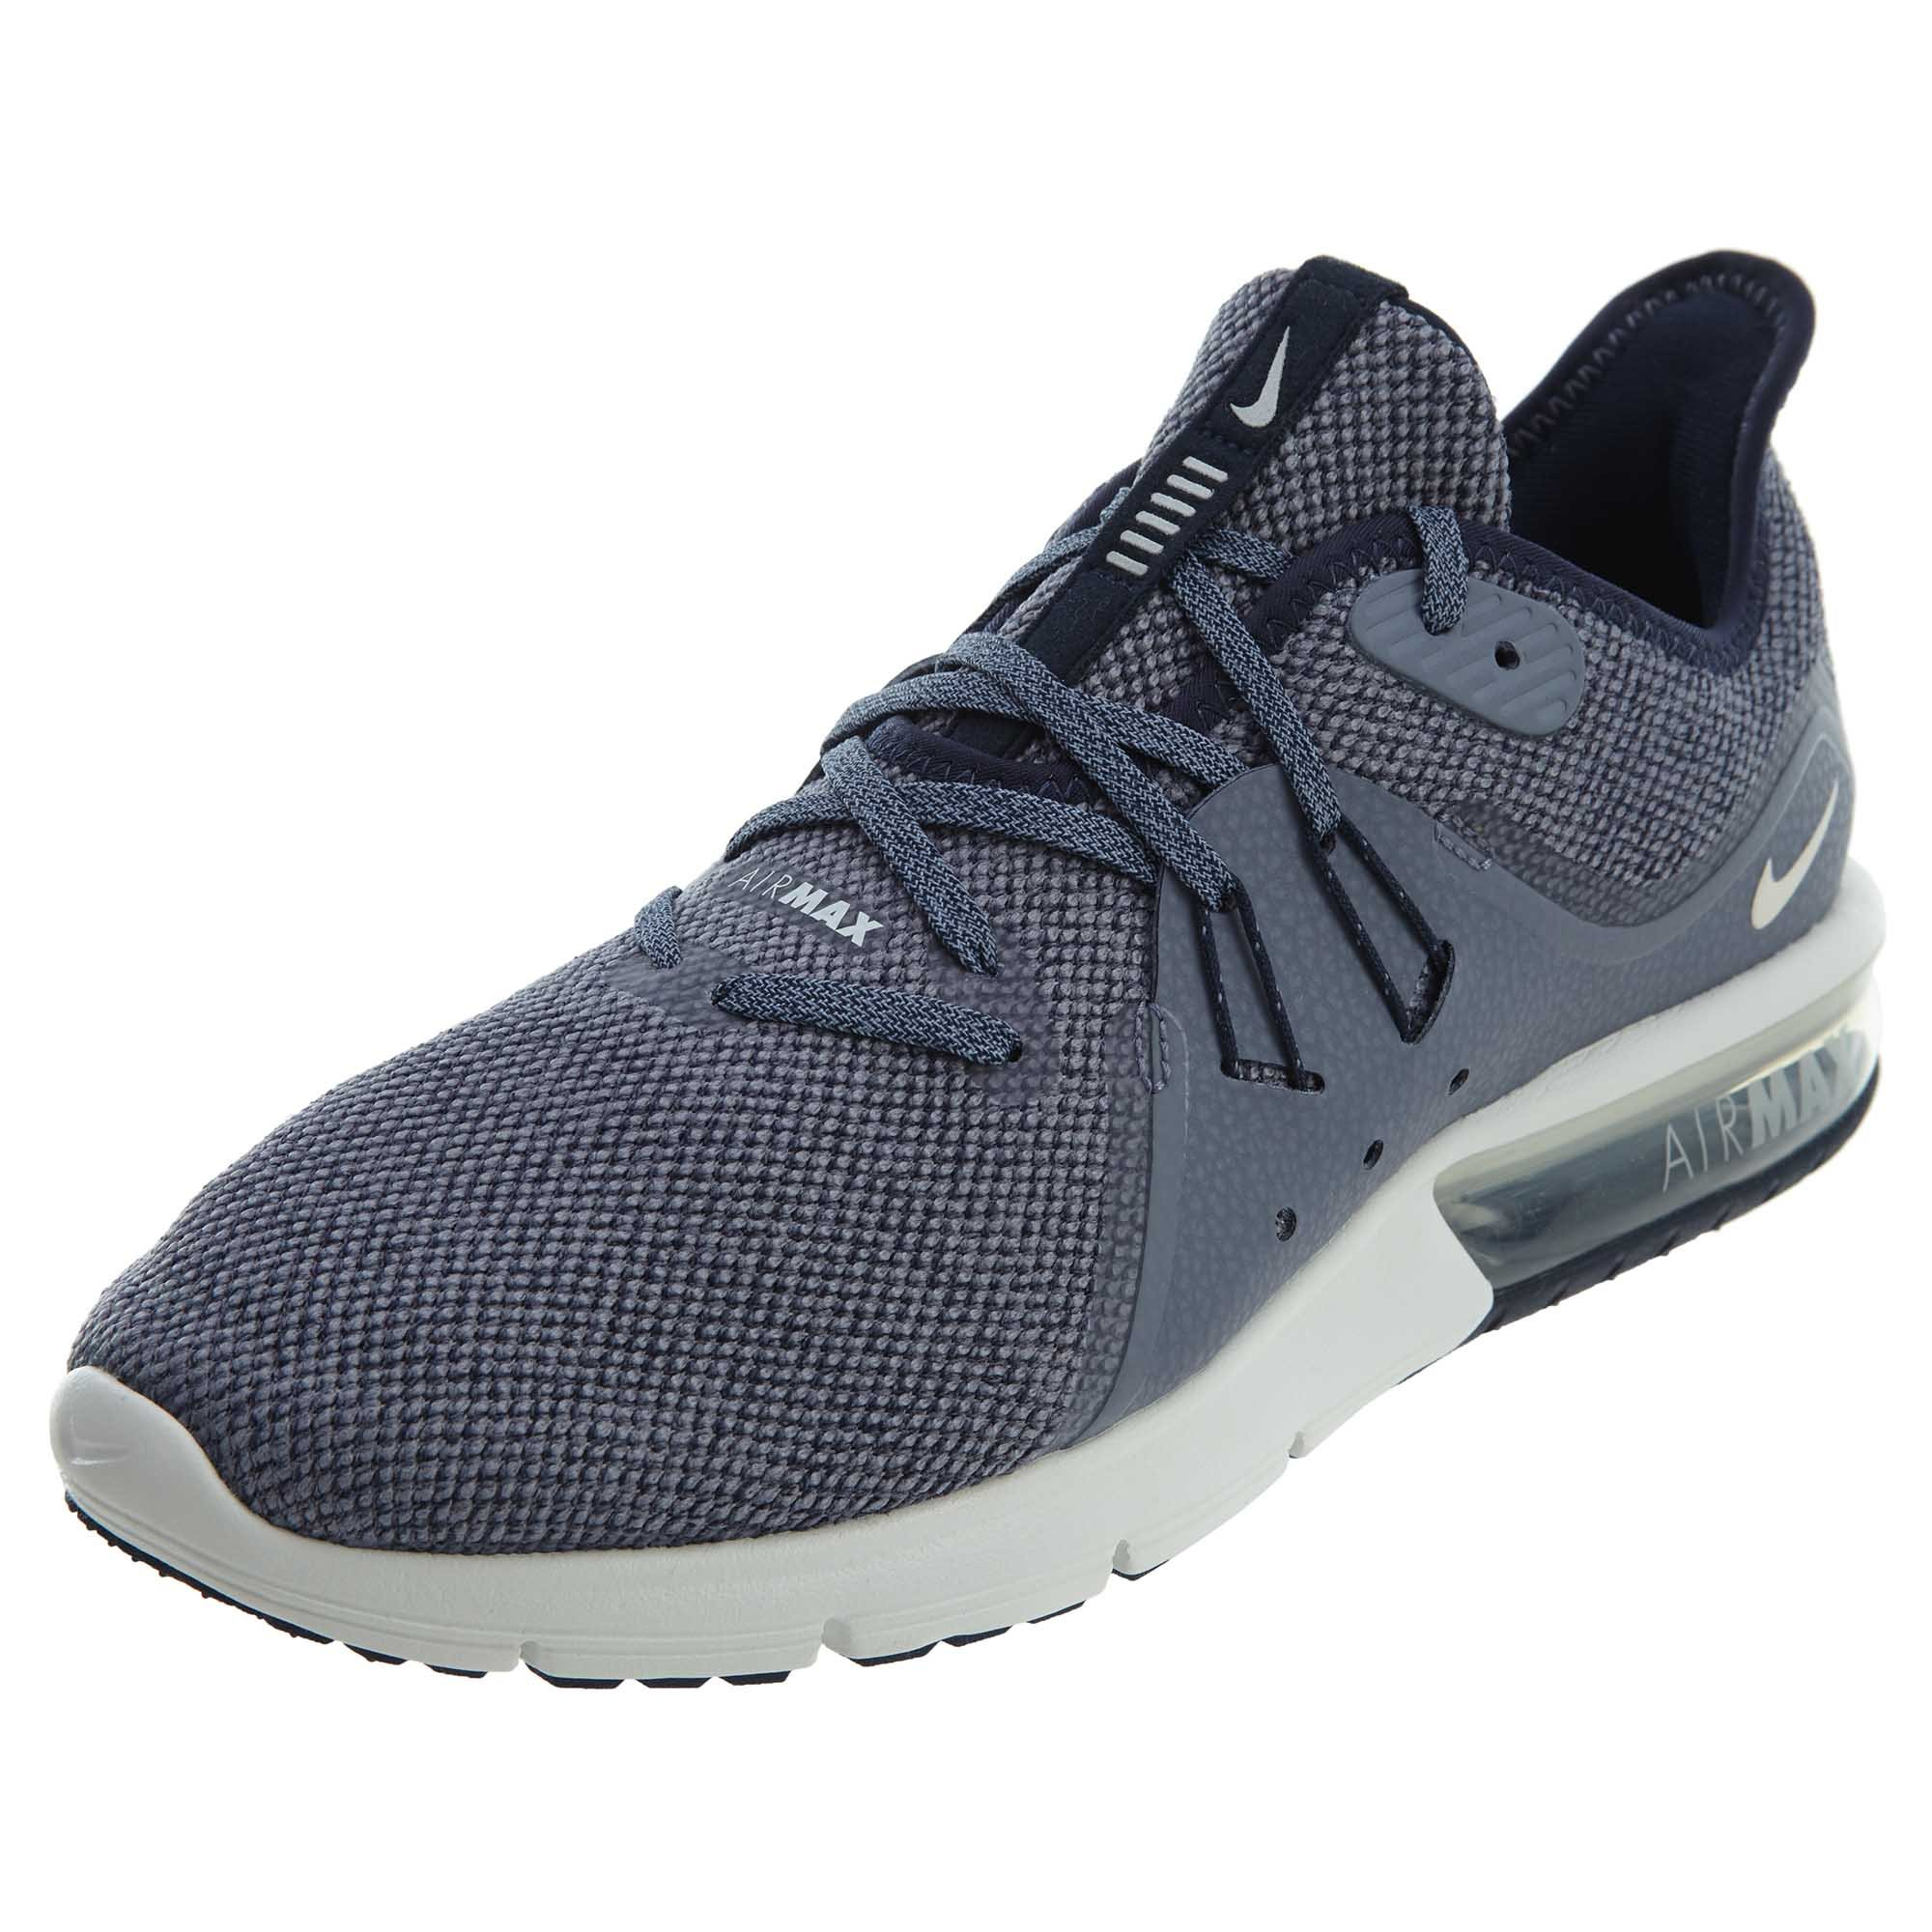 89da4b60917 Galleon - NIKE AIR MAX Sequent 3 Mens Road Running Shoes 921694-402 Size 9  D(M) US